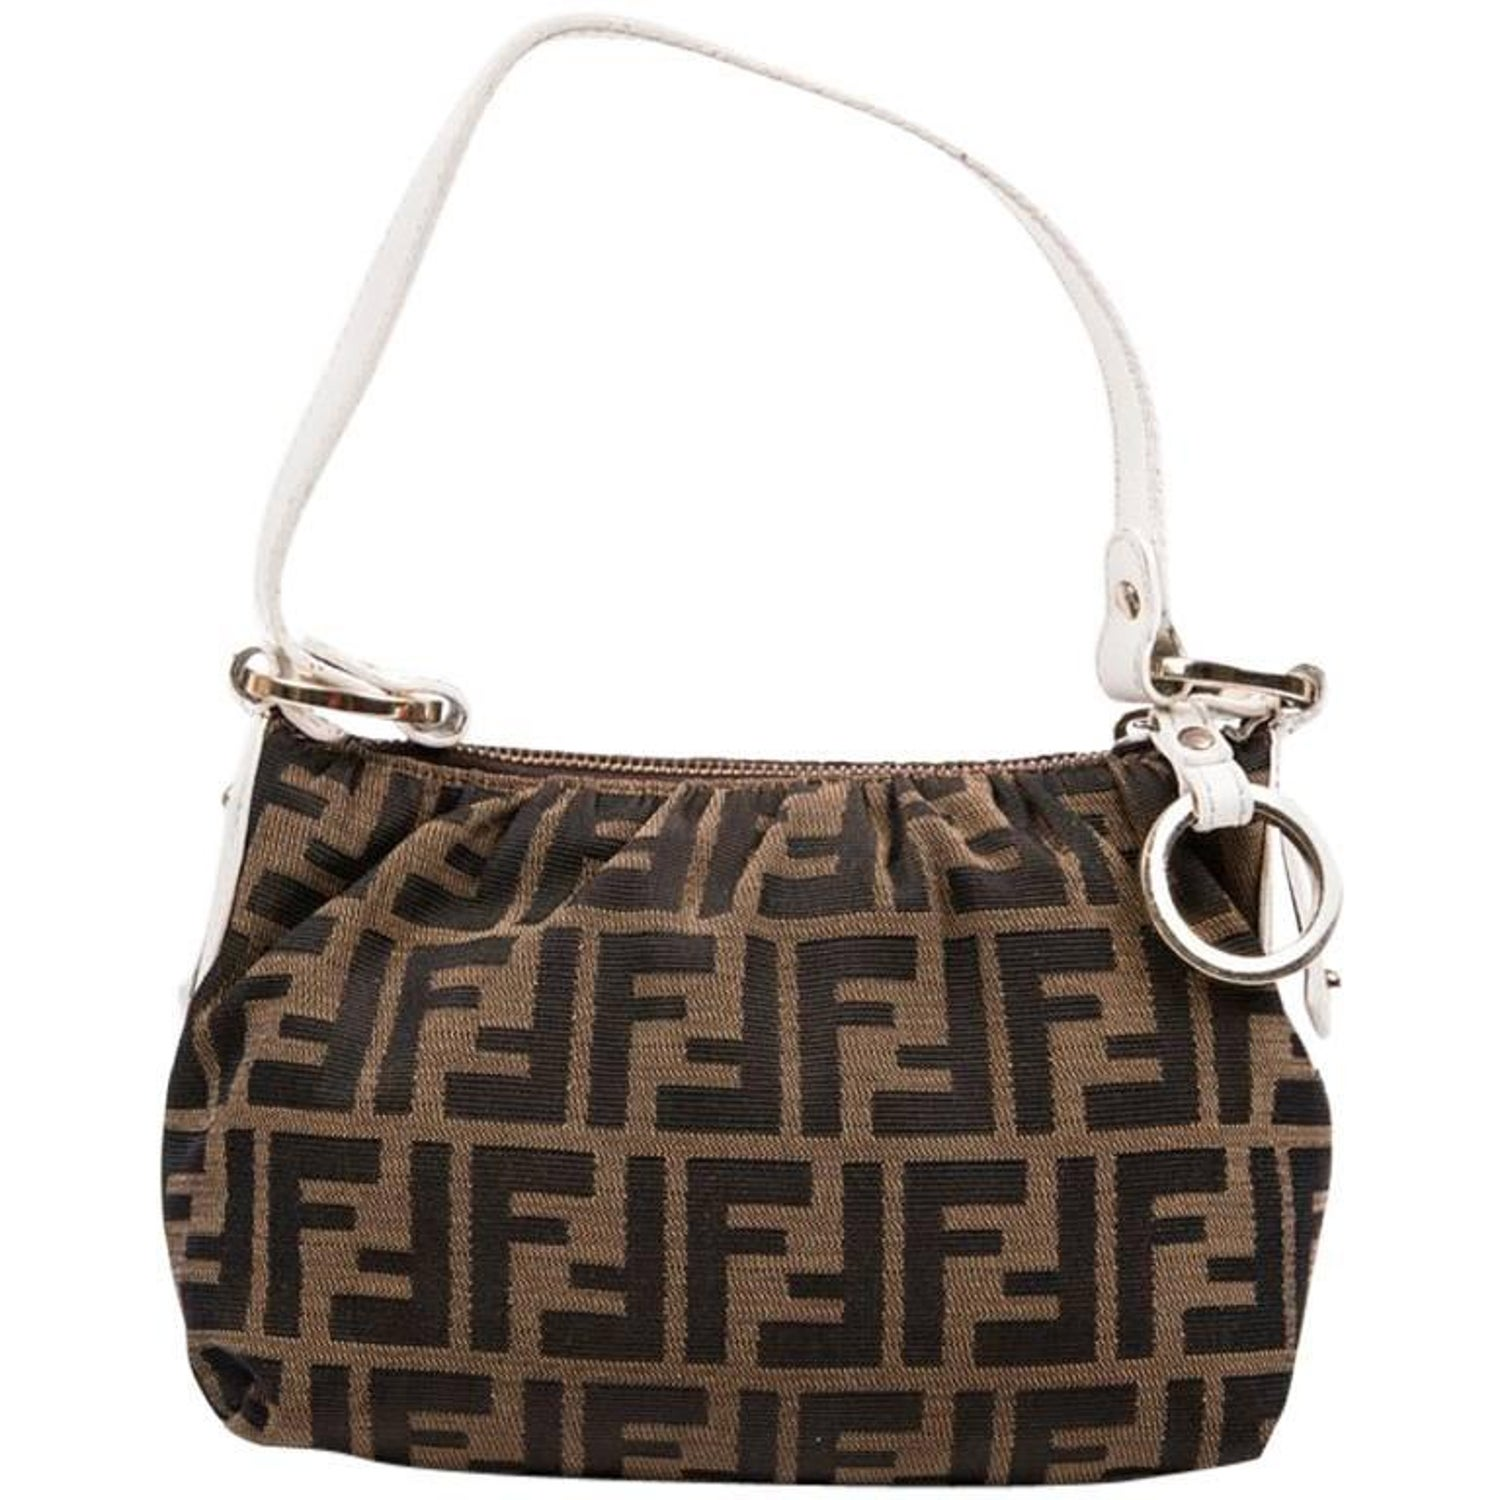 Fendi Brown Canvas and White Leather Mini Bag at 1stdibs 1467d1ed3fe